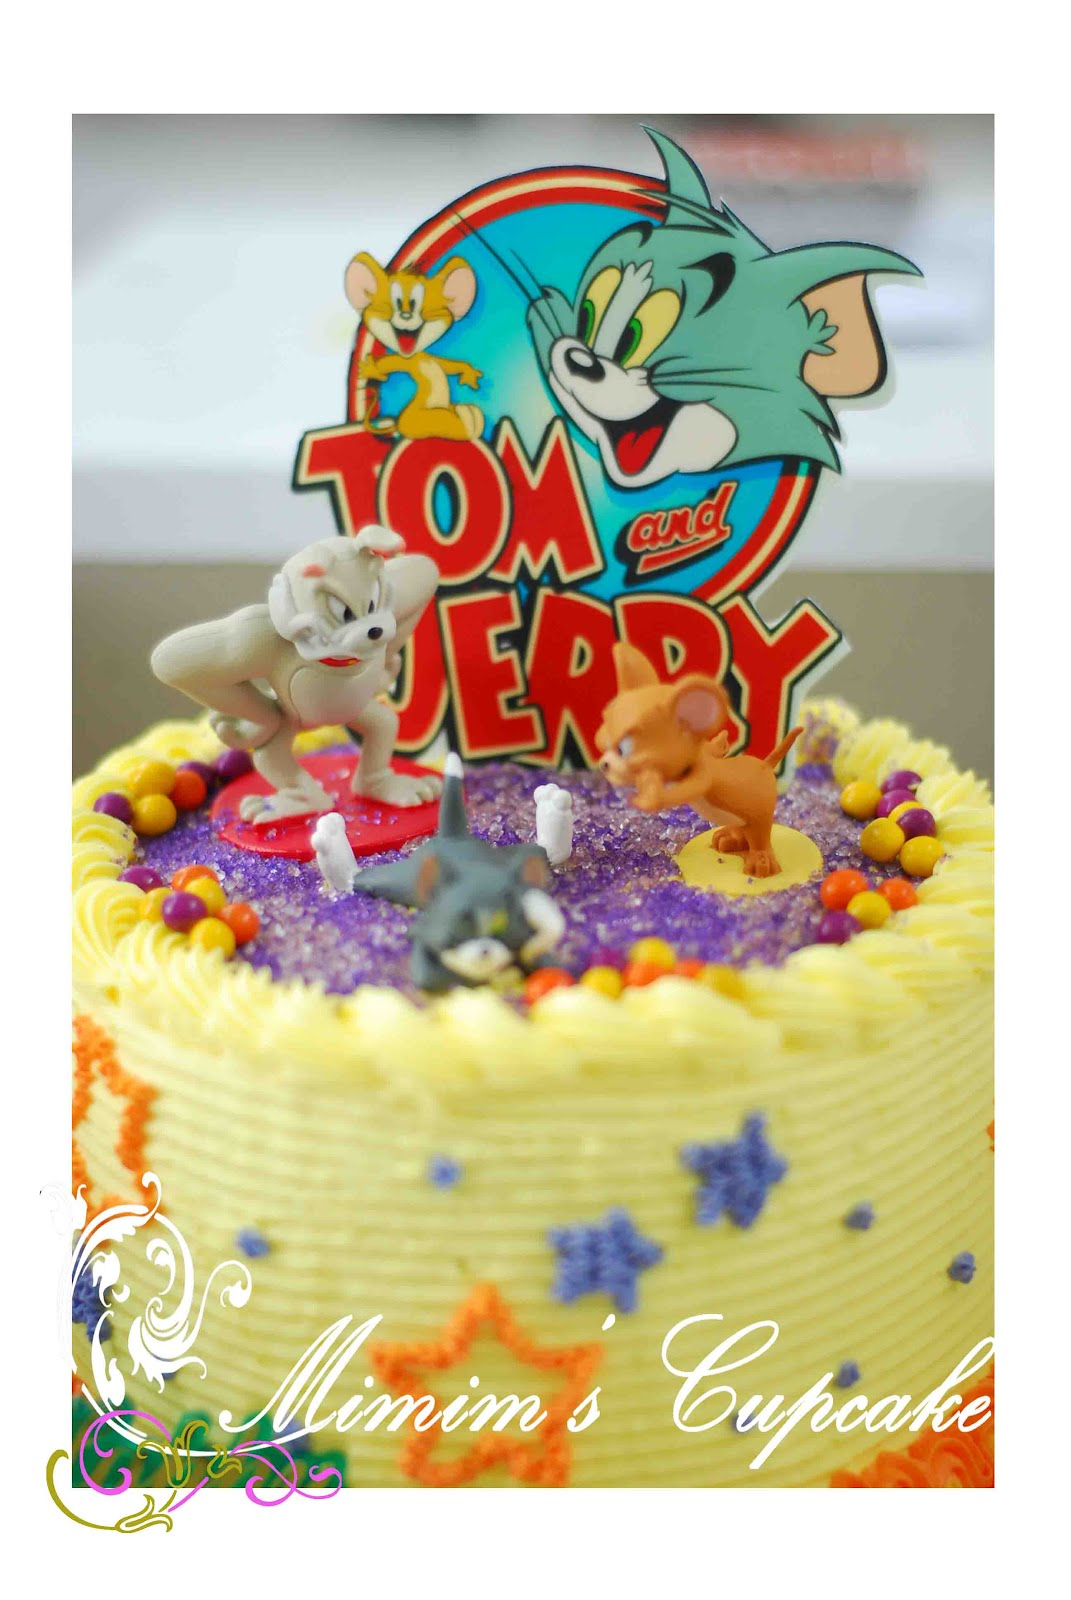 Tom And Jerry Bird In Cake